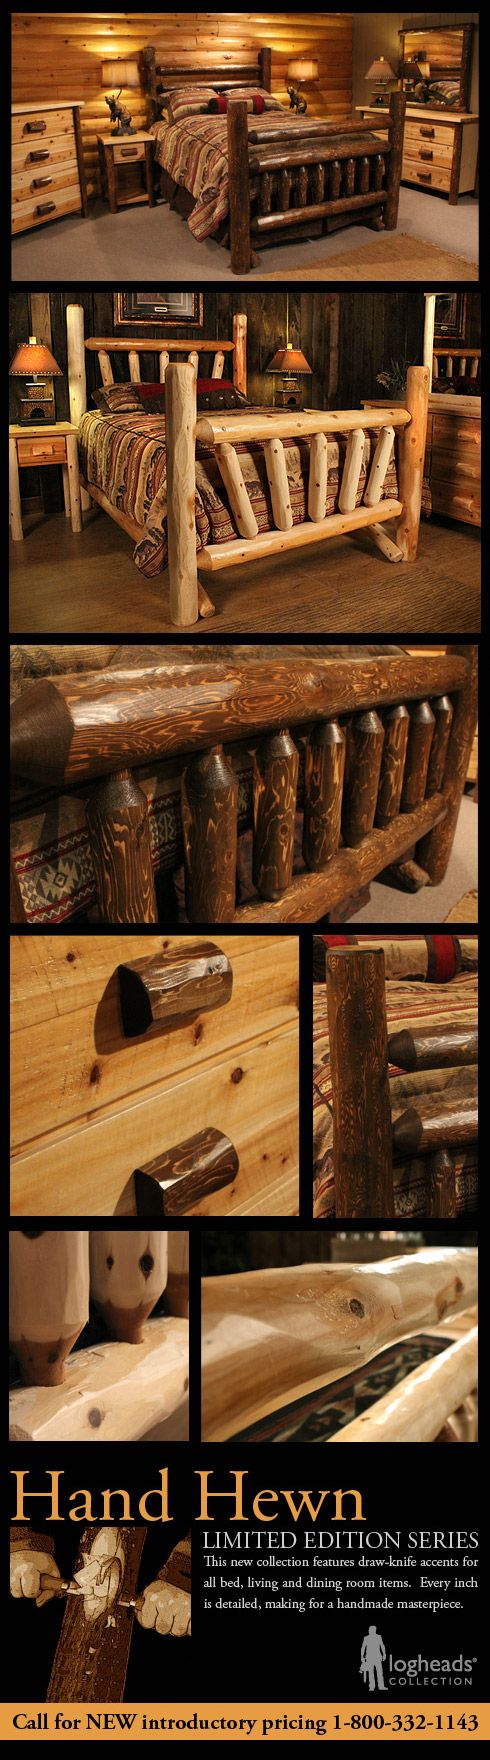 Hand Hewn and peeled log bedroom furniture. Available in all beds, dressers, chests and nightstands - each piece is hand made with draw-knife accents.